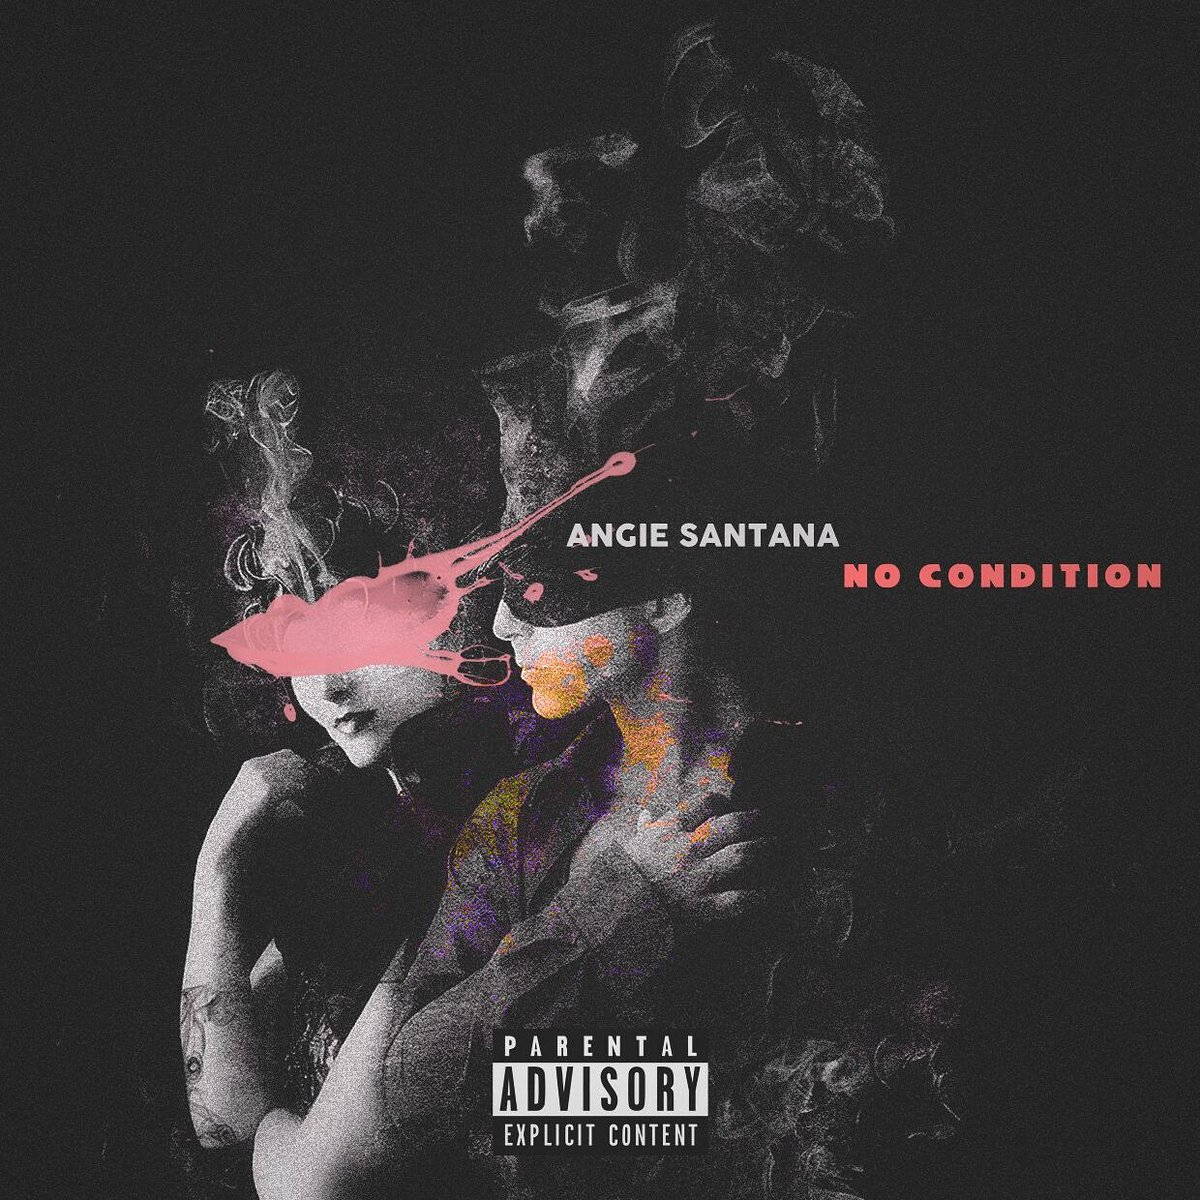 Listen To Angie Santana's 'No Condition' Song C1e8F0cWEAQtX3q